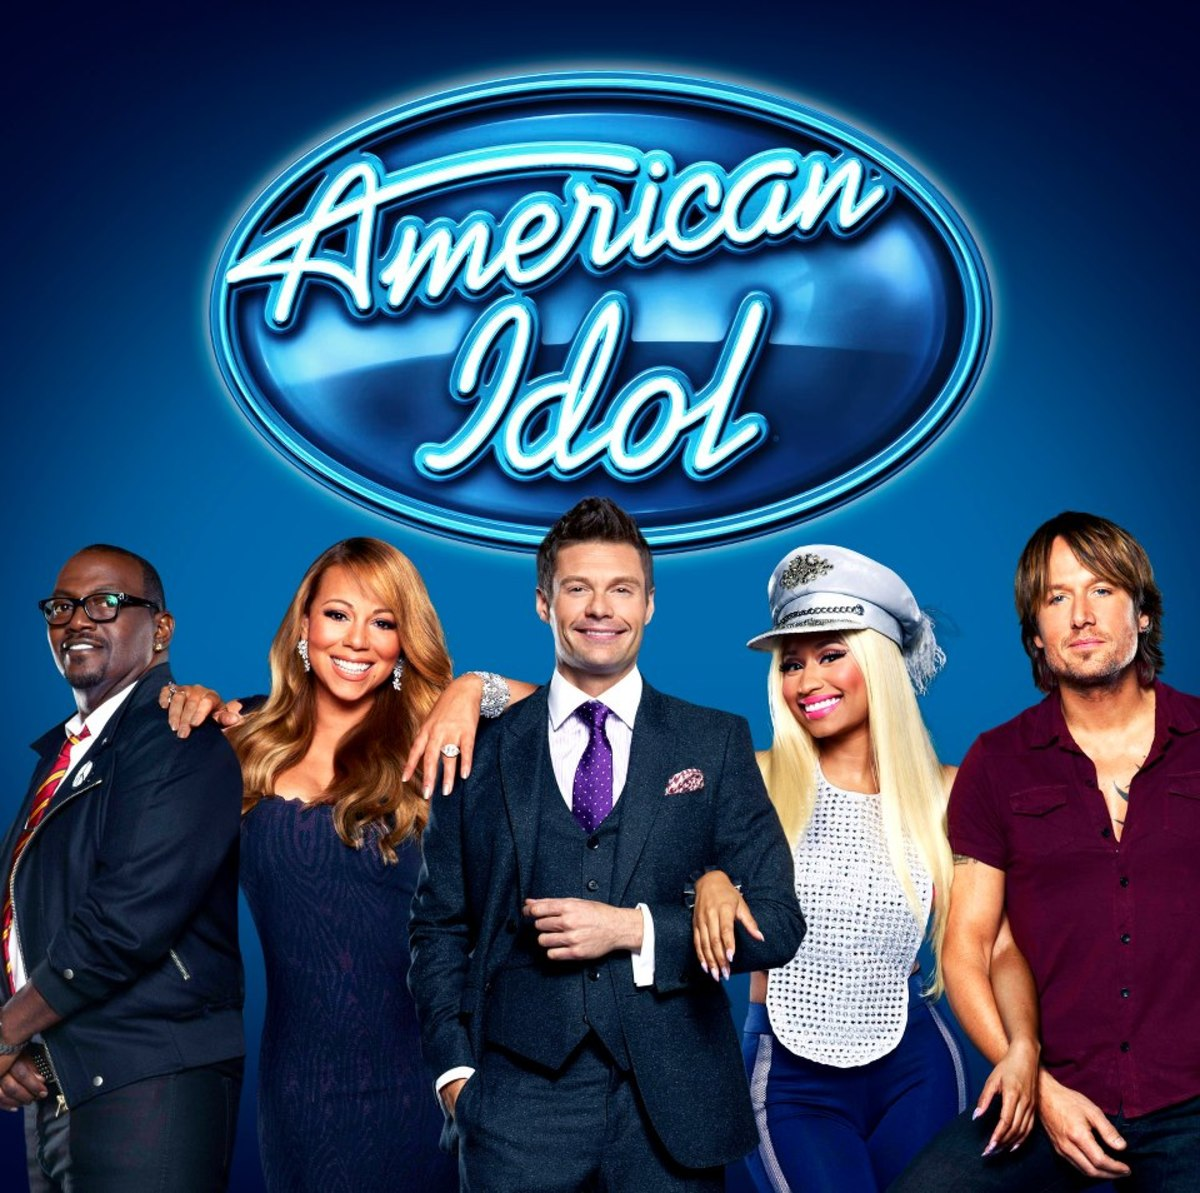 Judges: Randy Jackson, Mariah Carey, Nikki Minaj, & Keith Urban pose with host, Ryan Seacrest for Season 12 of American Idol